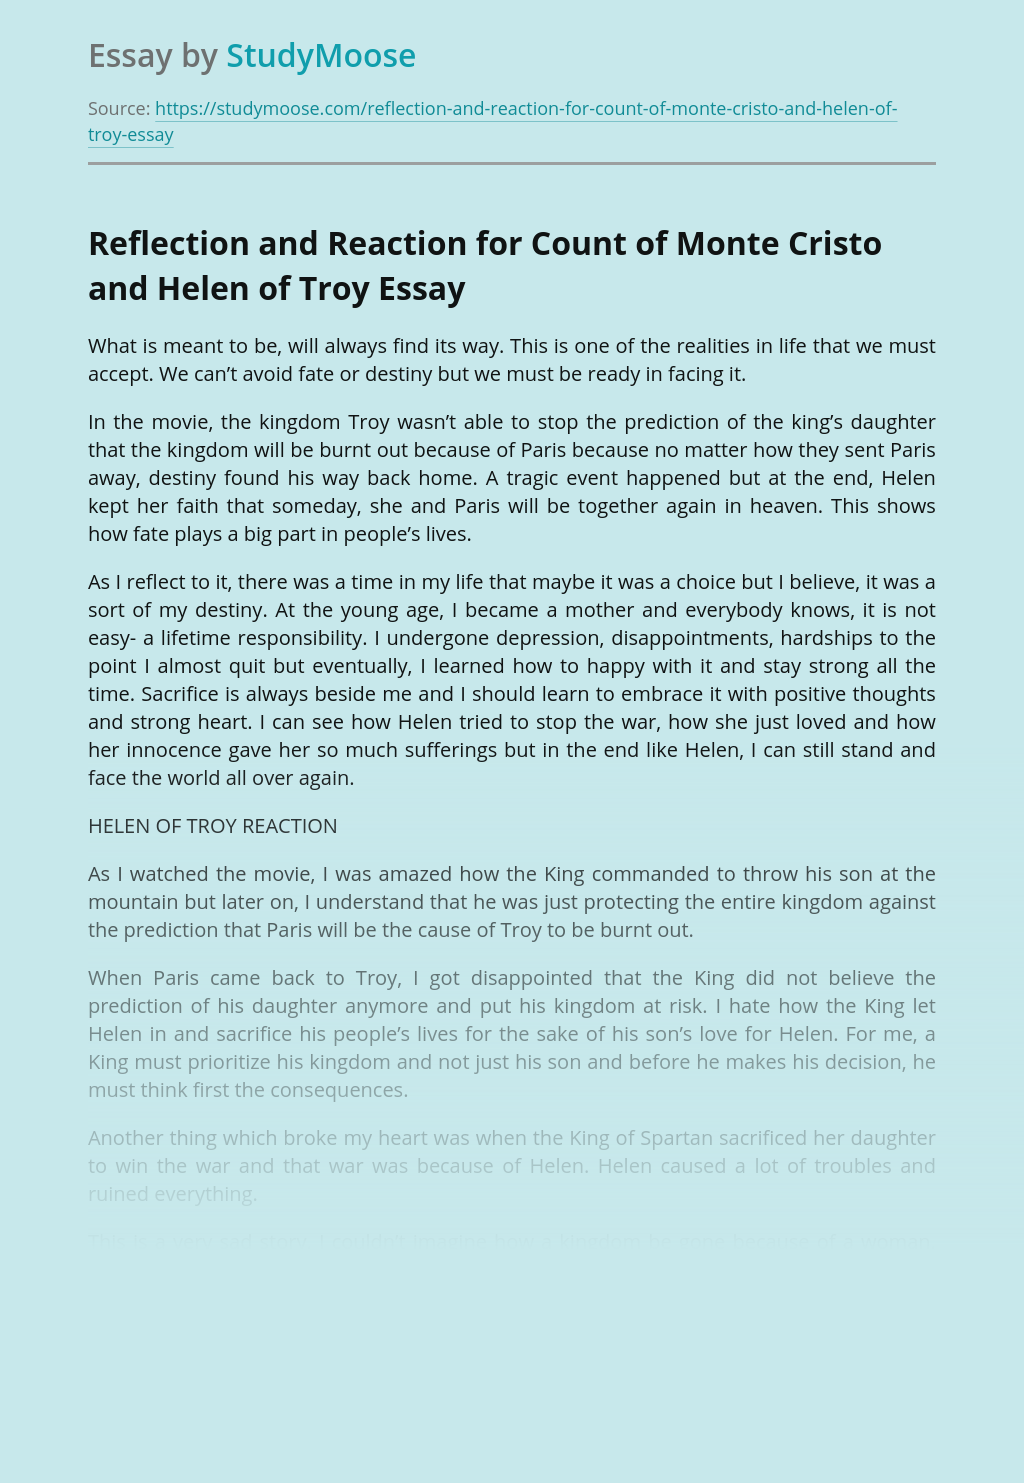 Reflection and Reaction for Count of Monte Cristo and Helen of Troy